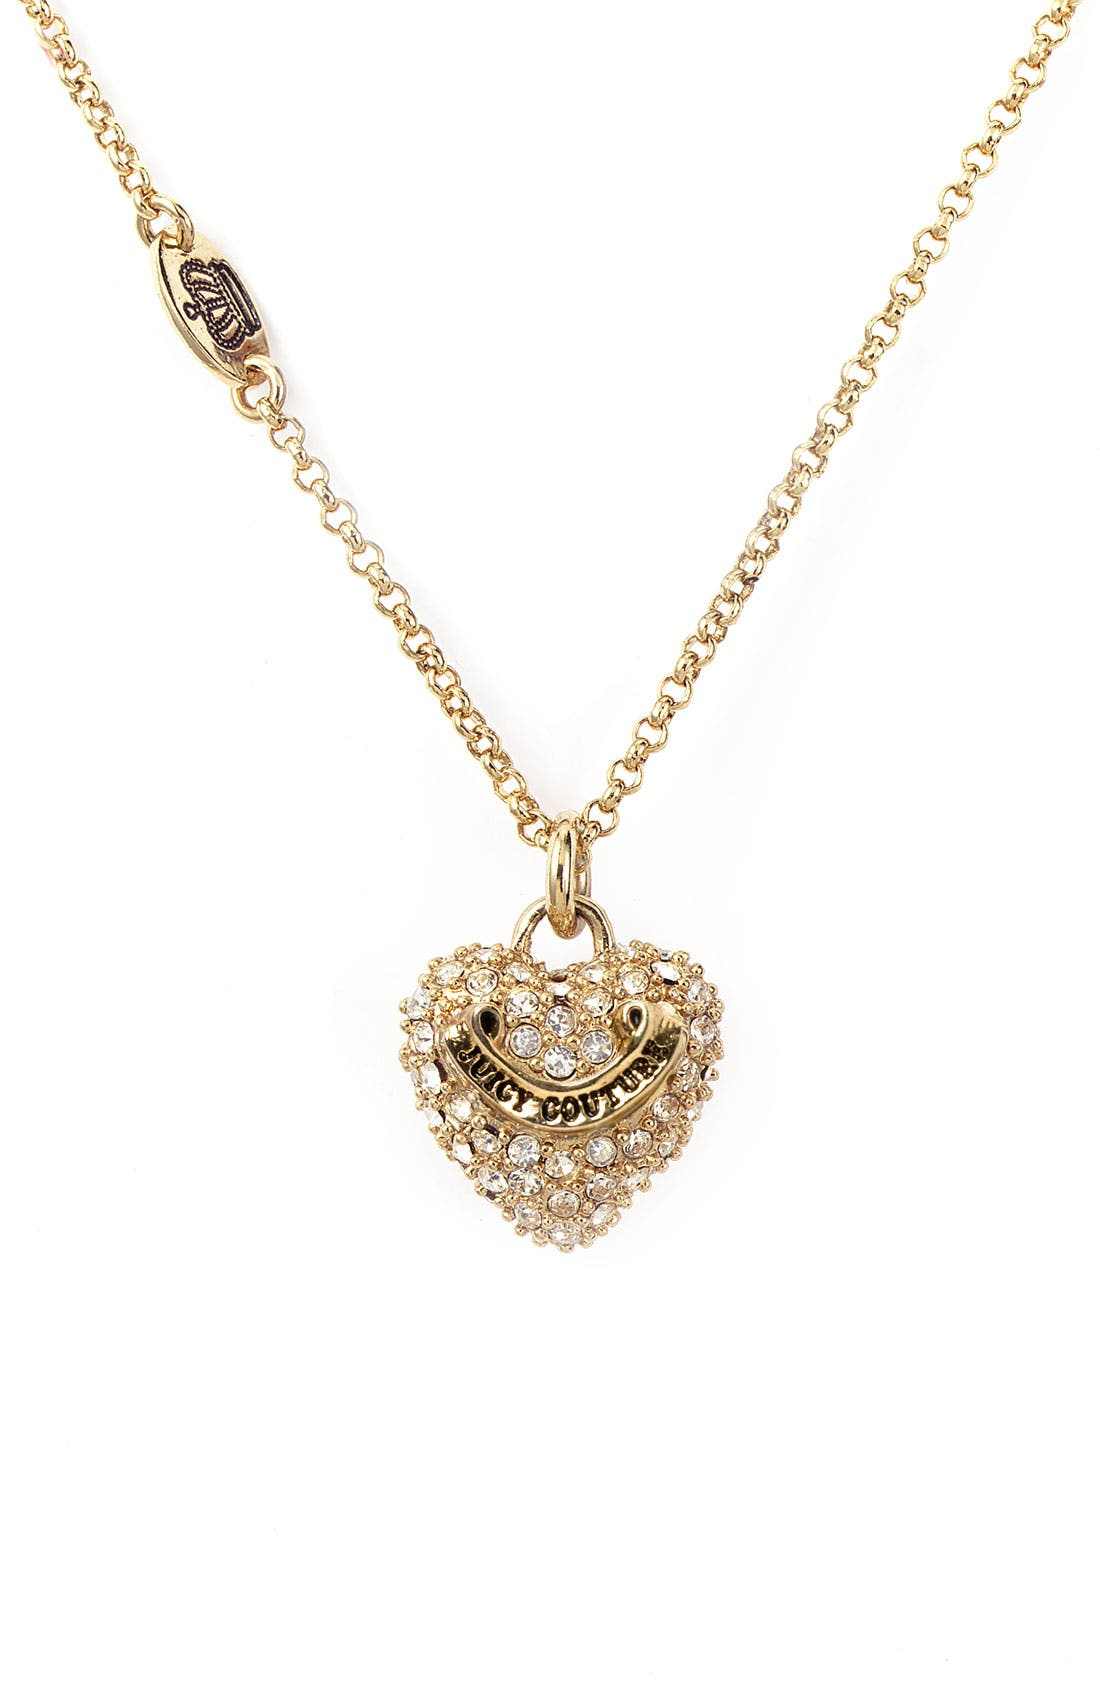 Main Image - Juicy Couture 'Wish - Heart' Necklace